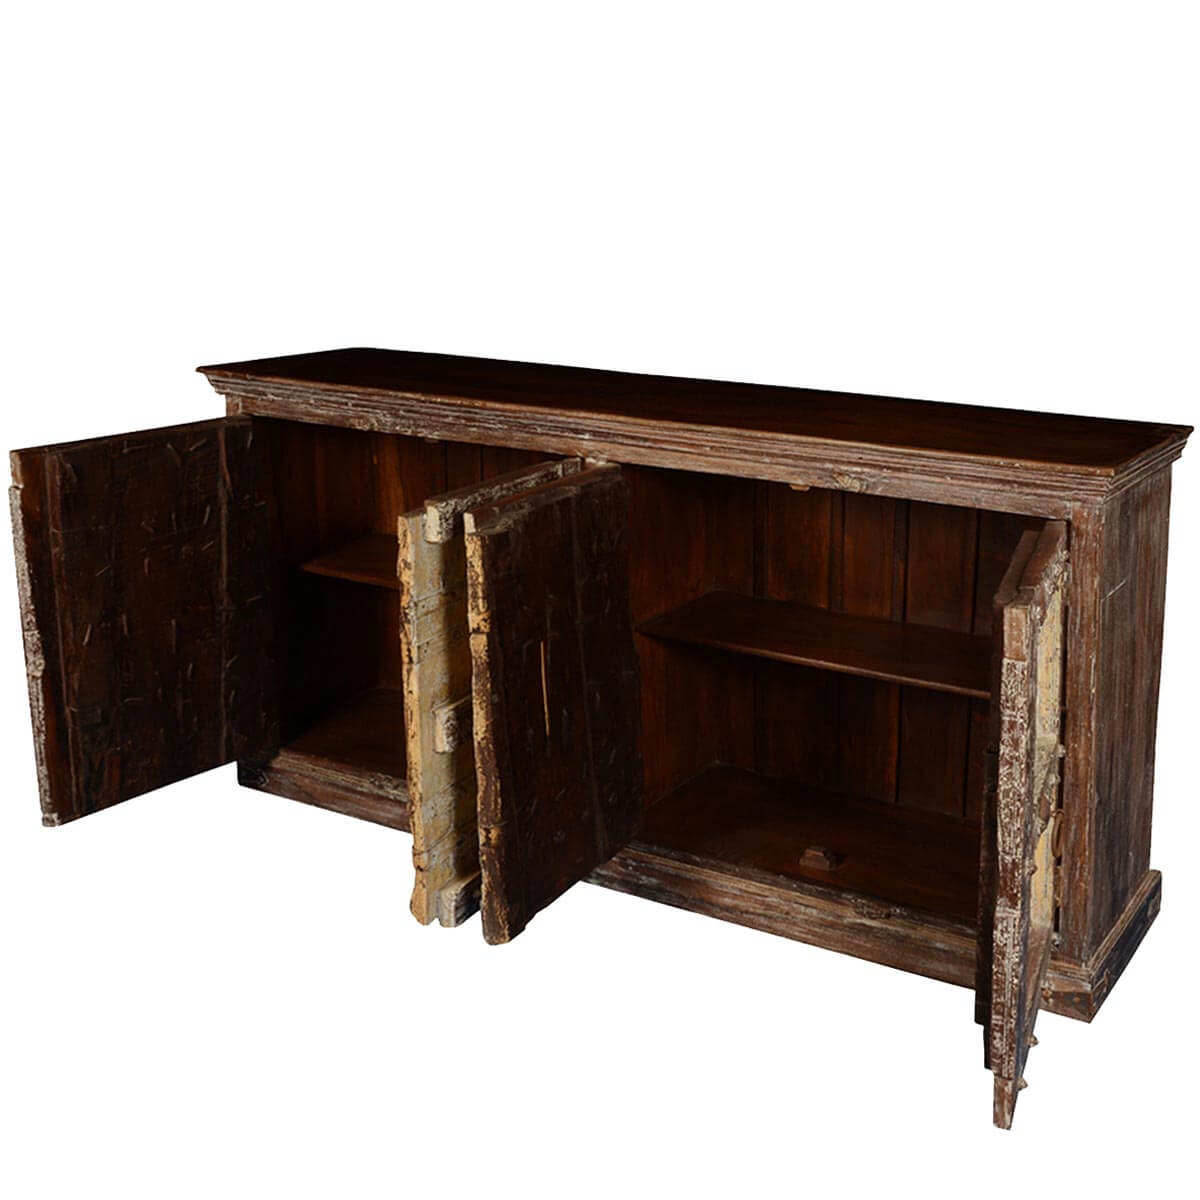 Gothic Dreams Reclaimed Wood 85quot Sideboard Cabinet : 64063 from www.sierralivingconcepts.com size 1200 x 1200 jpeg 115kB